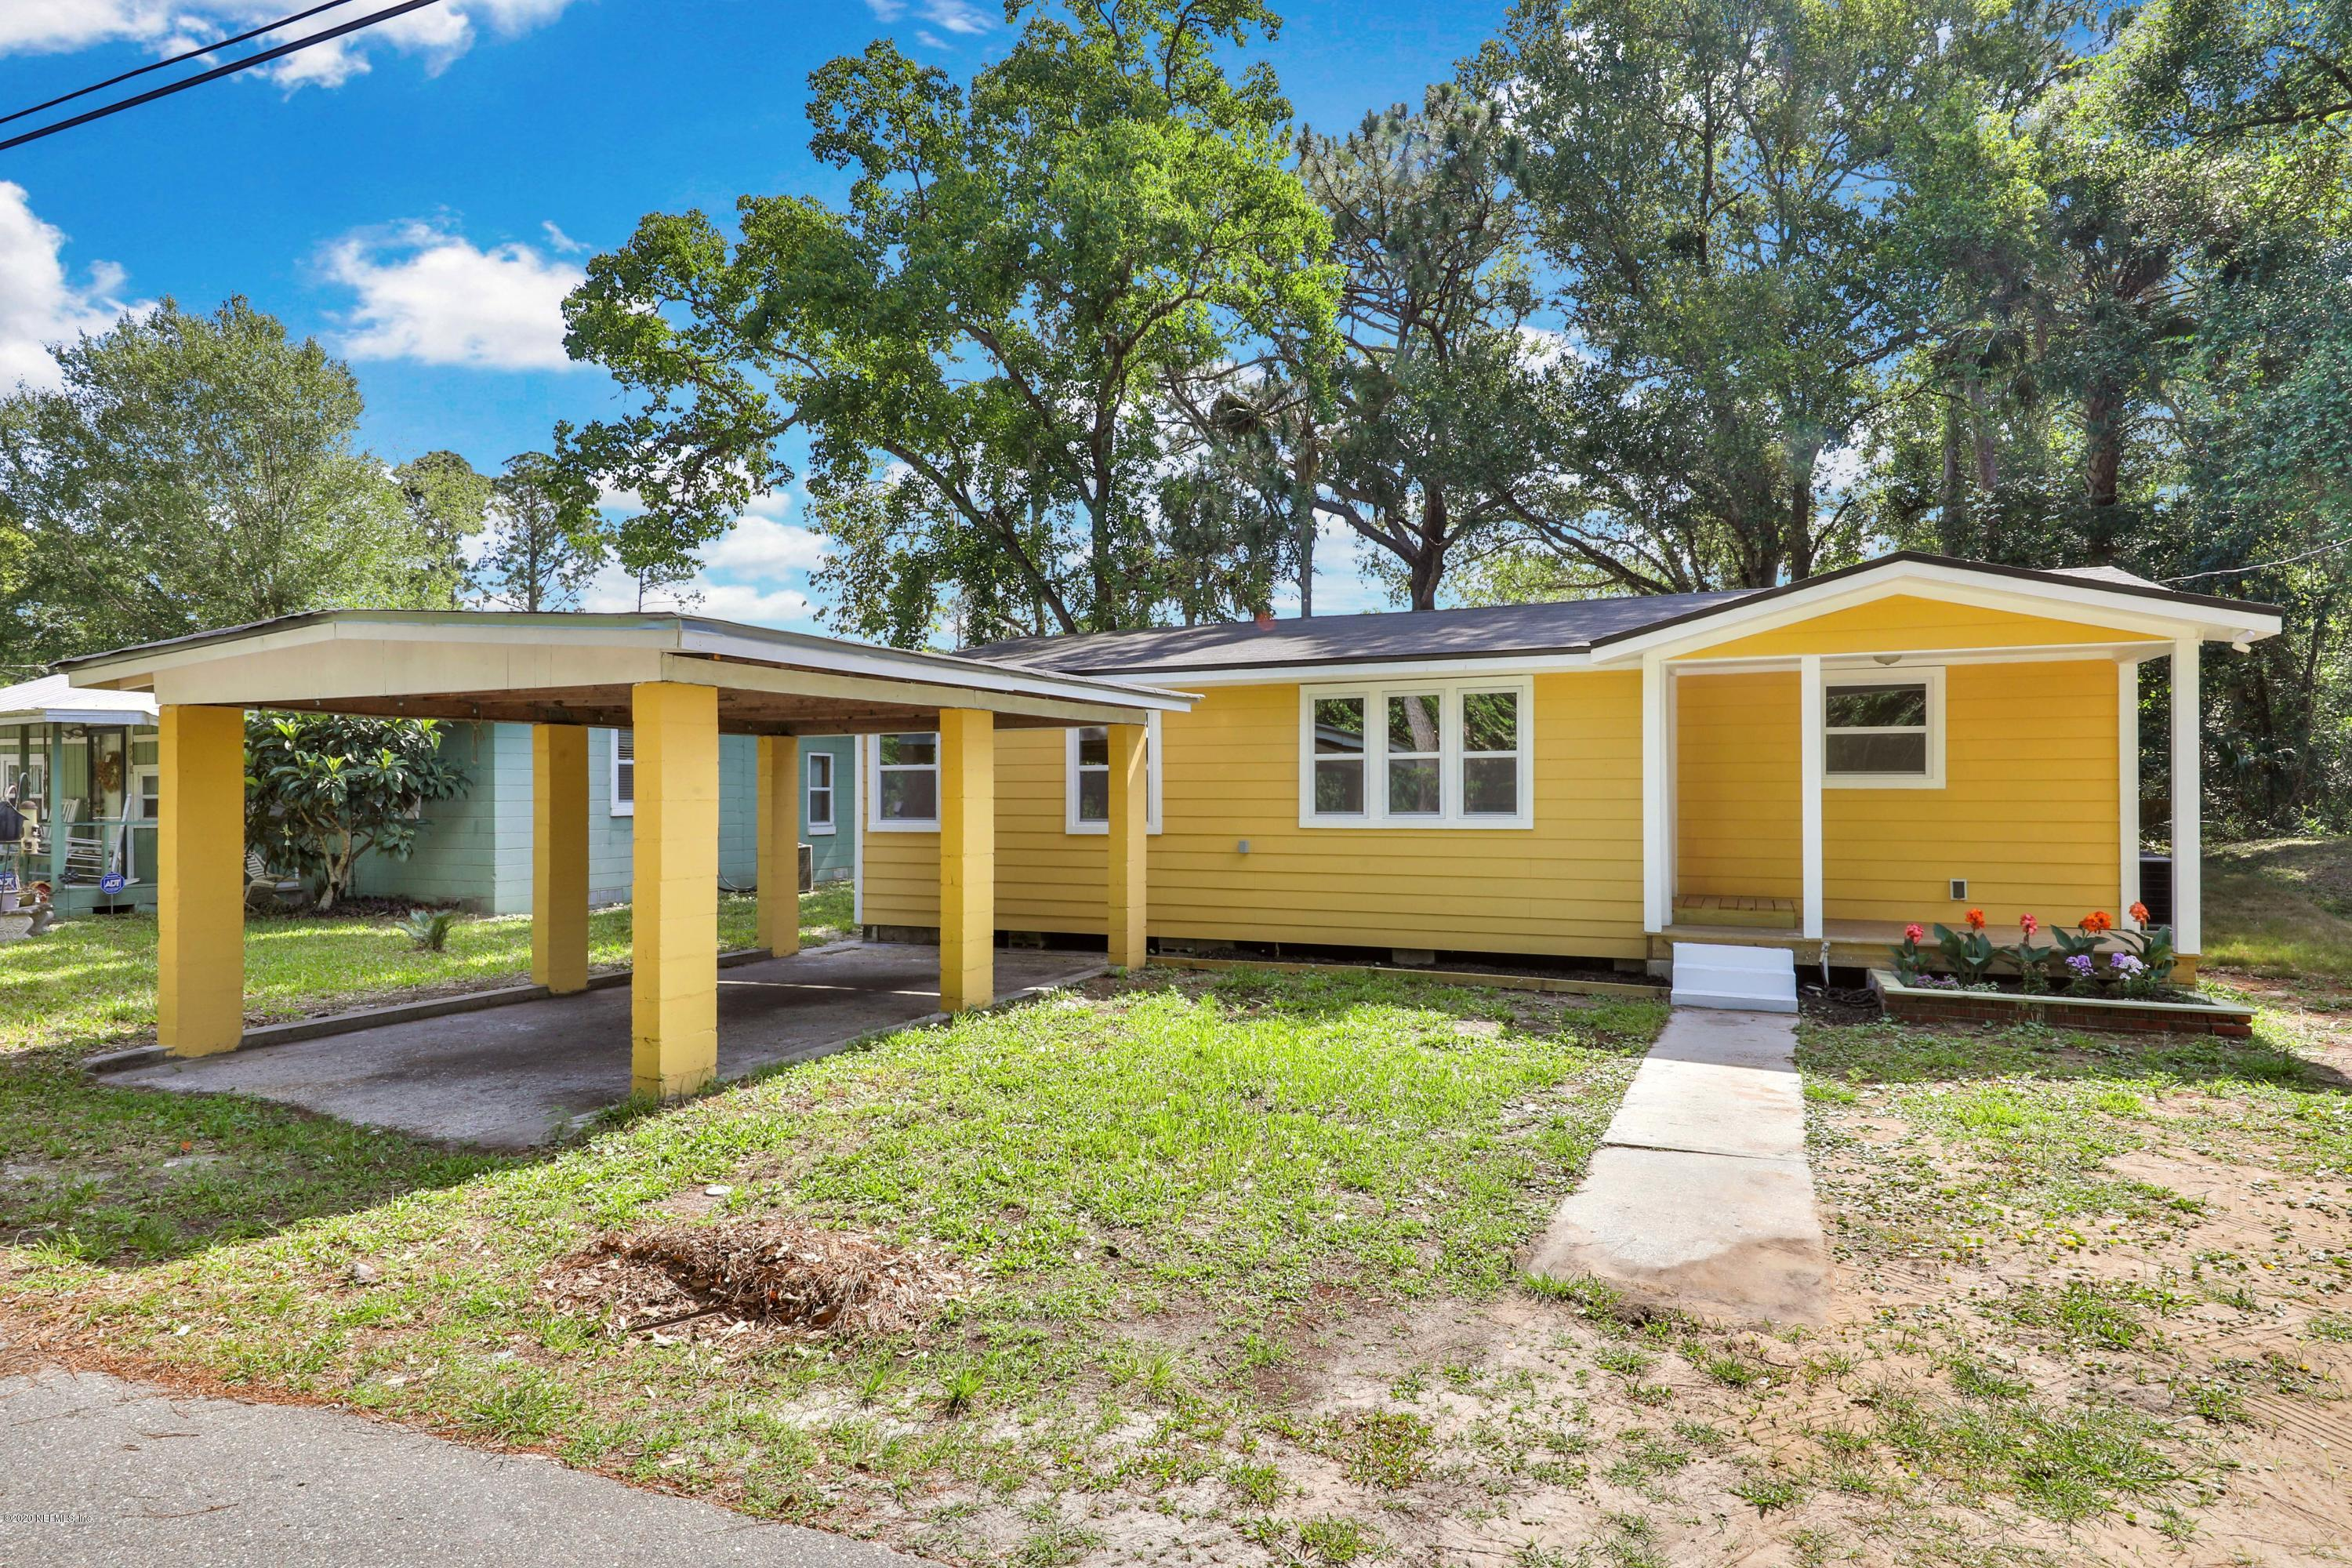 532 TENANT, ST AUGUSTINE, FLORIDA 32084, 4 Bedrooms Bedrooms, ,2 BathroomsBathrooms,Residential,For sale,TENANT,1054835